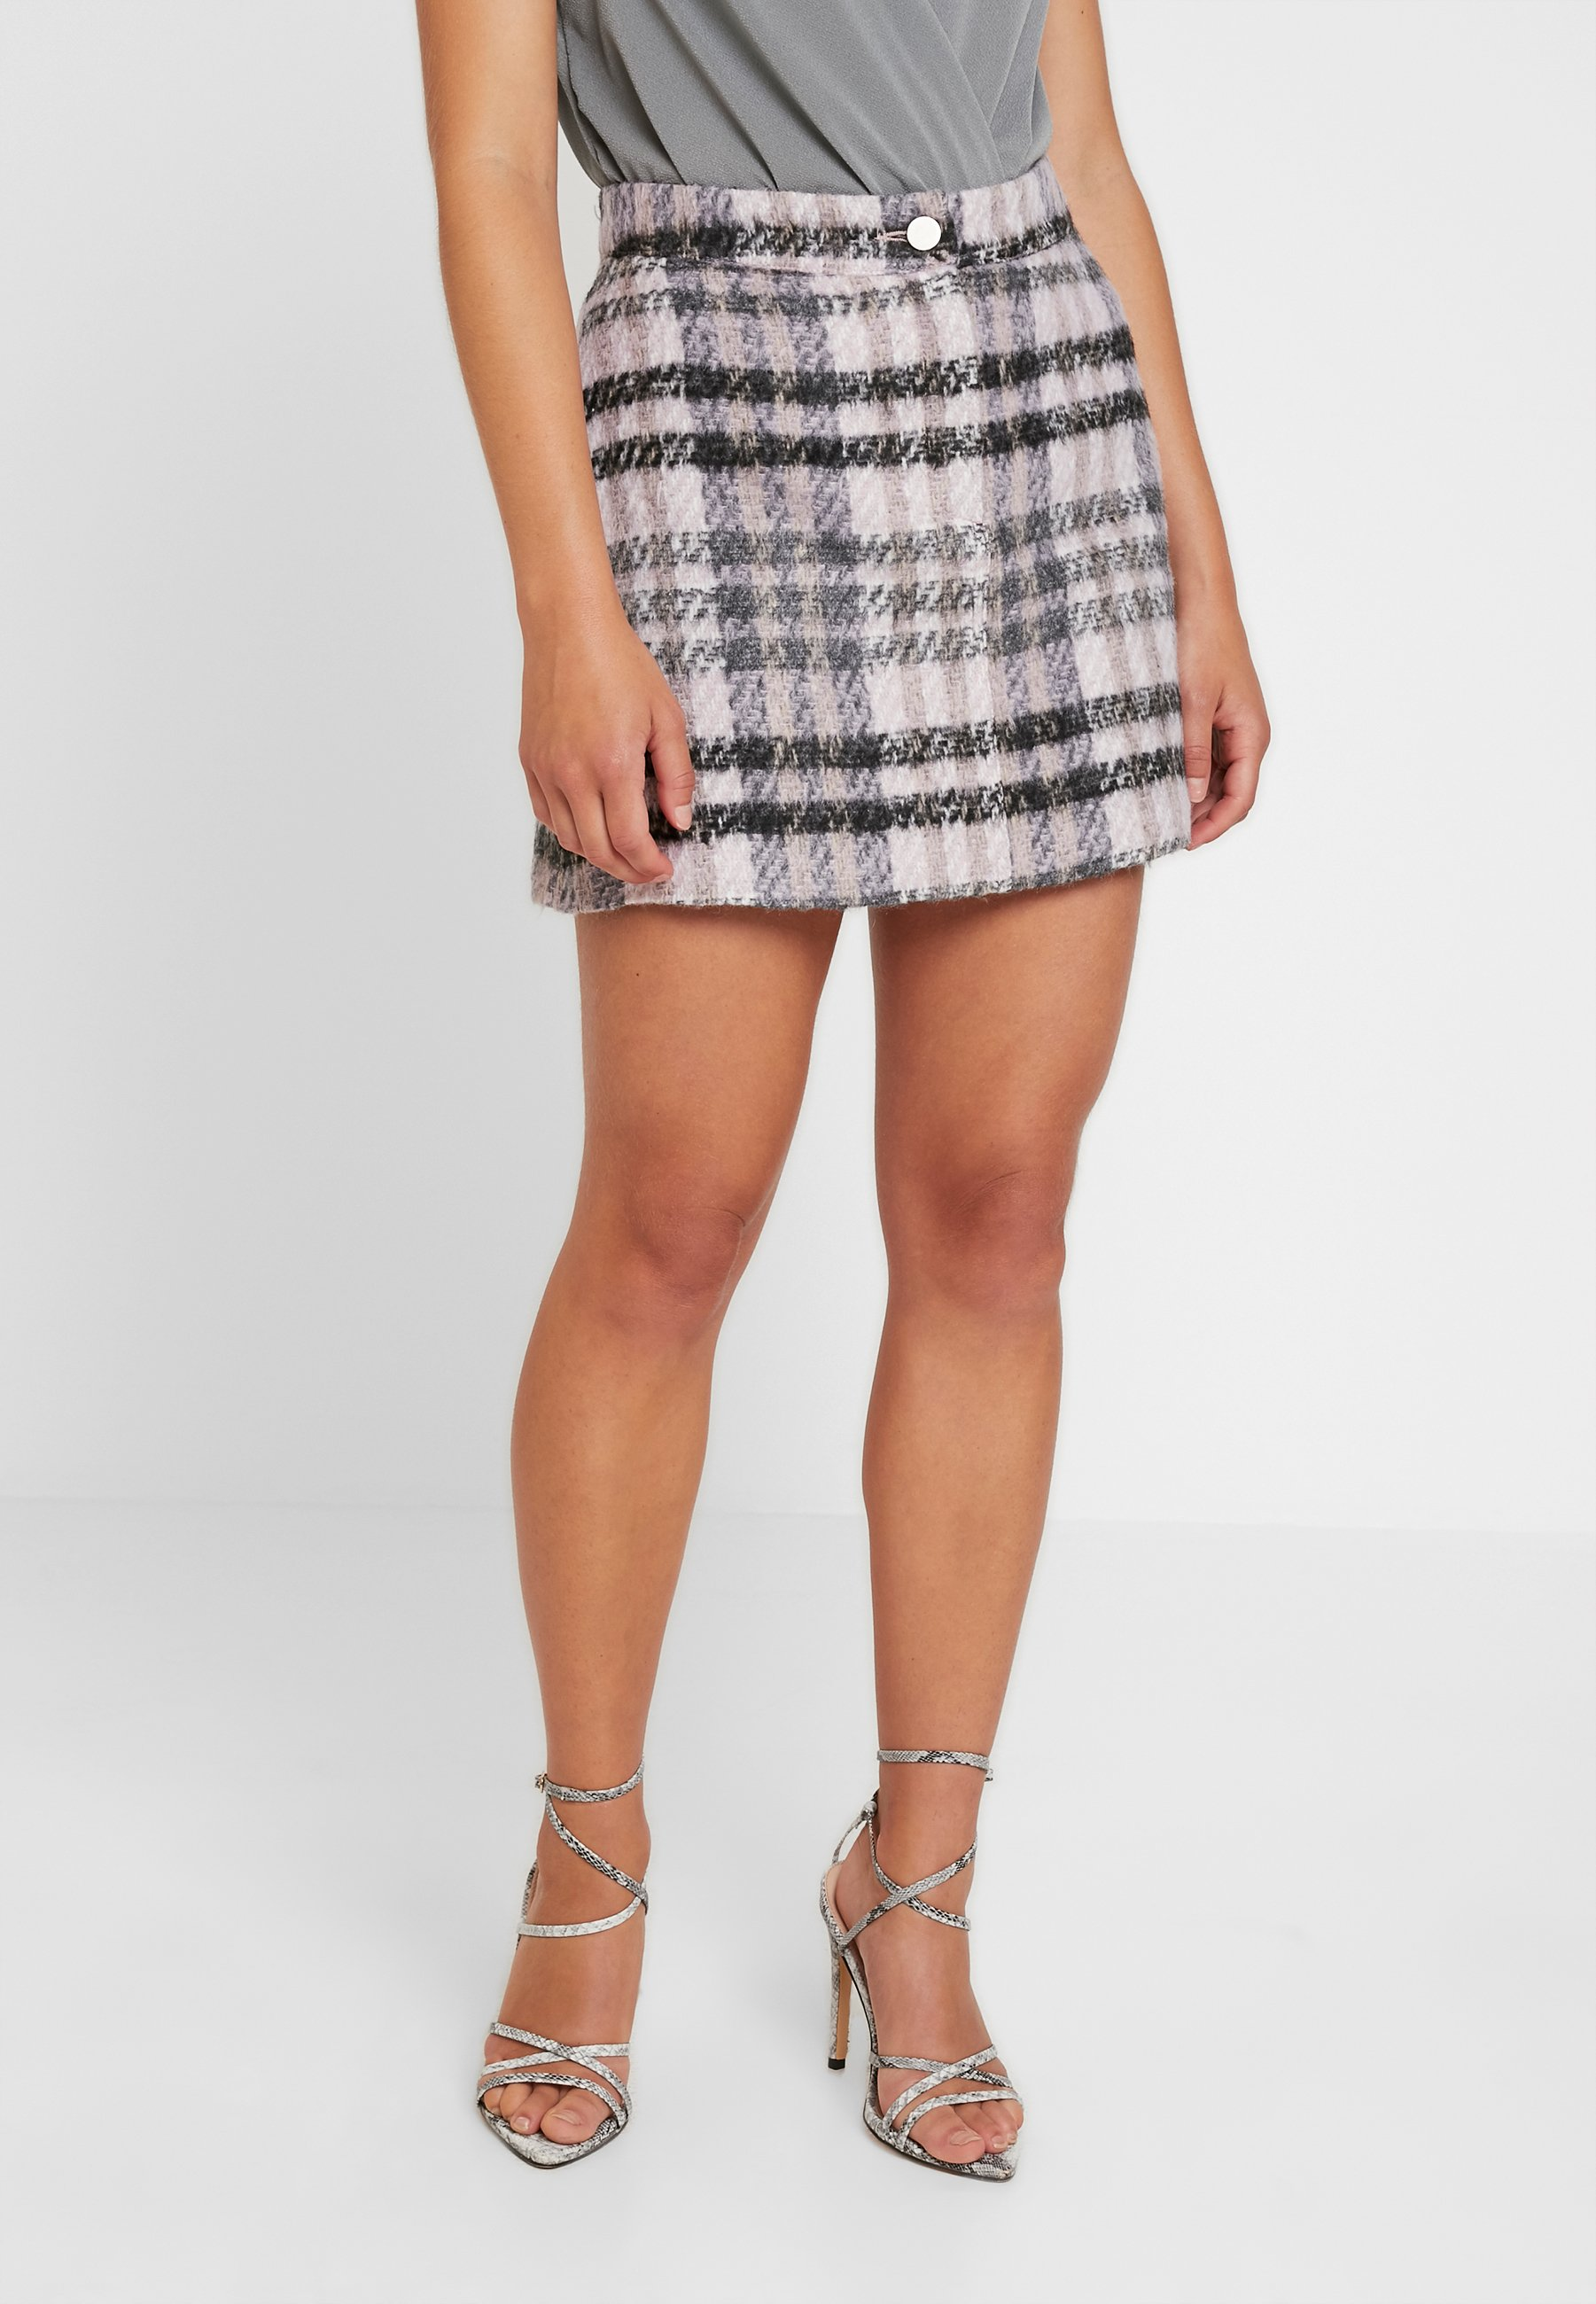 Petite purple CHECK BRUSHED SKIRTJupe trapèze Missguided b7yvY6fg